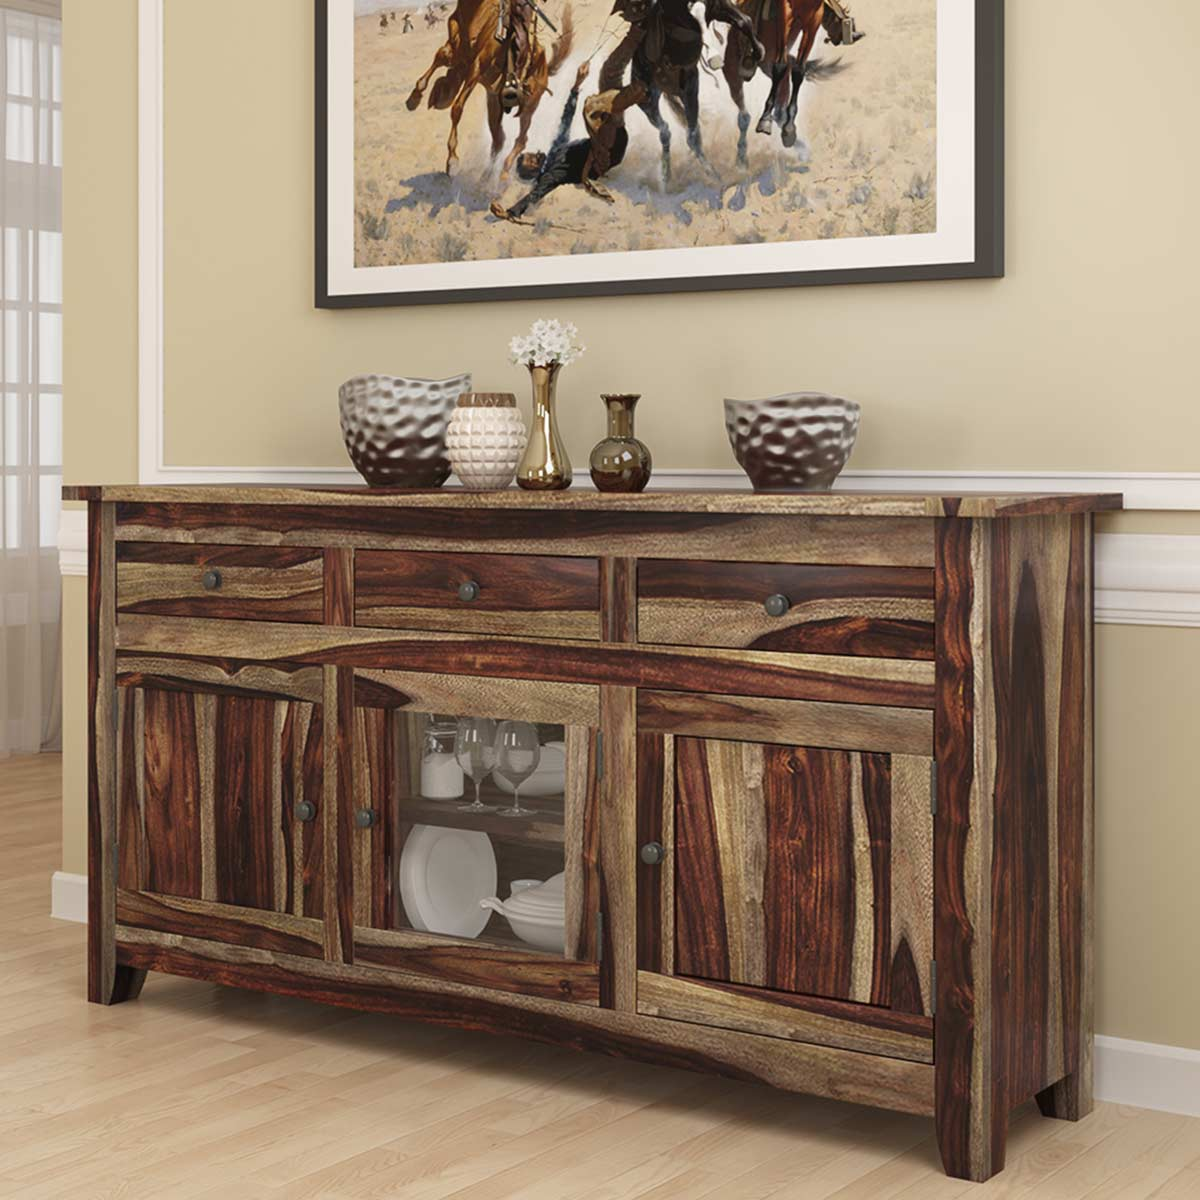 Frisco Modern Rustic Solid Wood Glass Door 3 Drawer Sideboard Cabinet